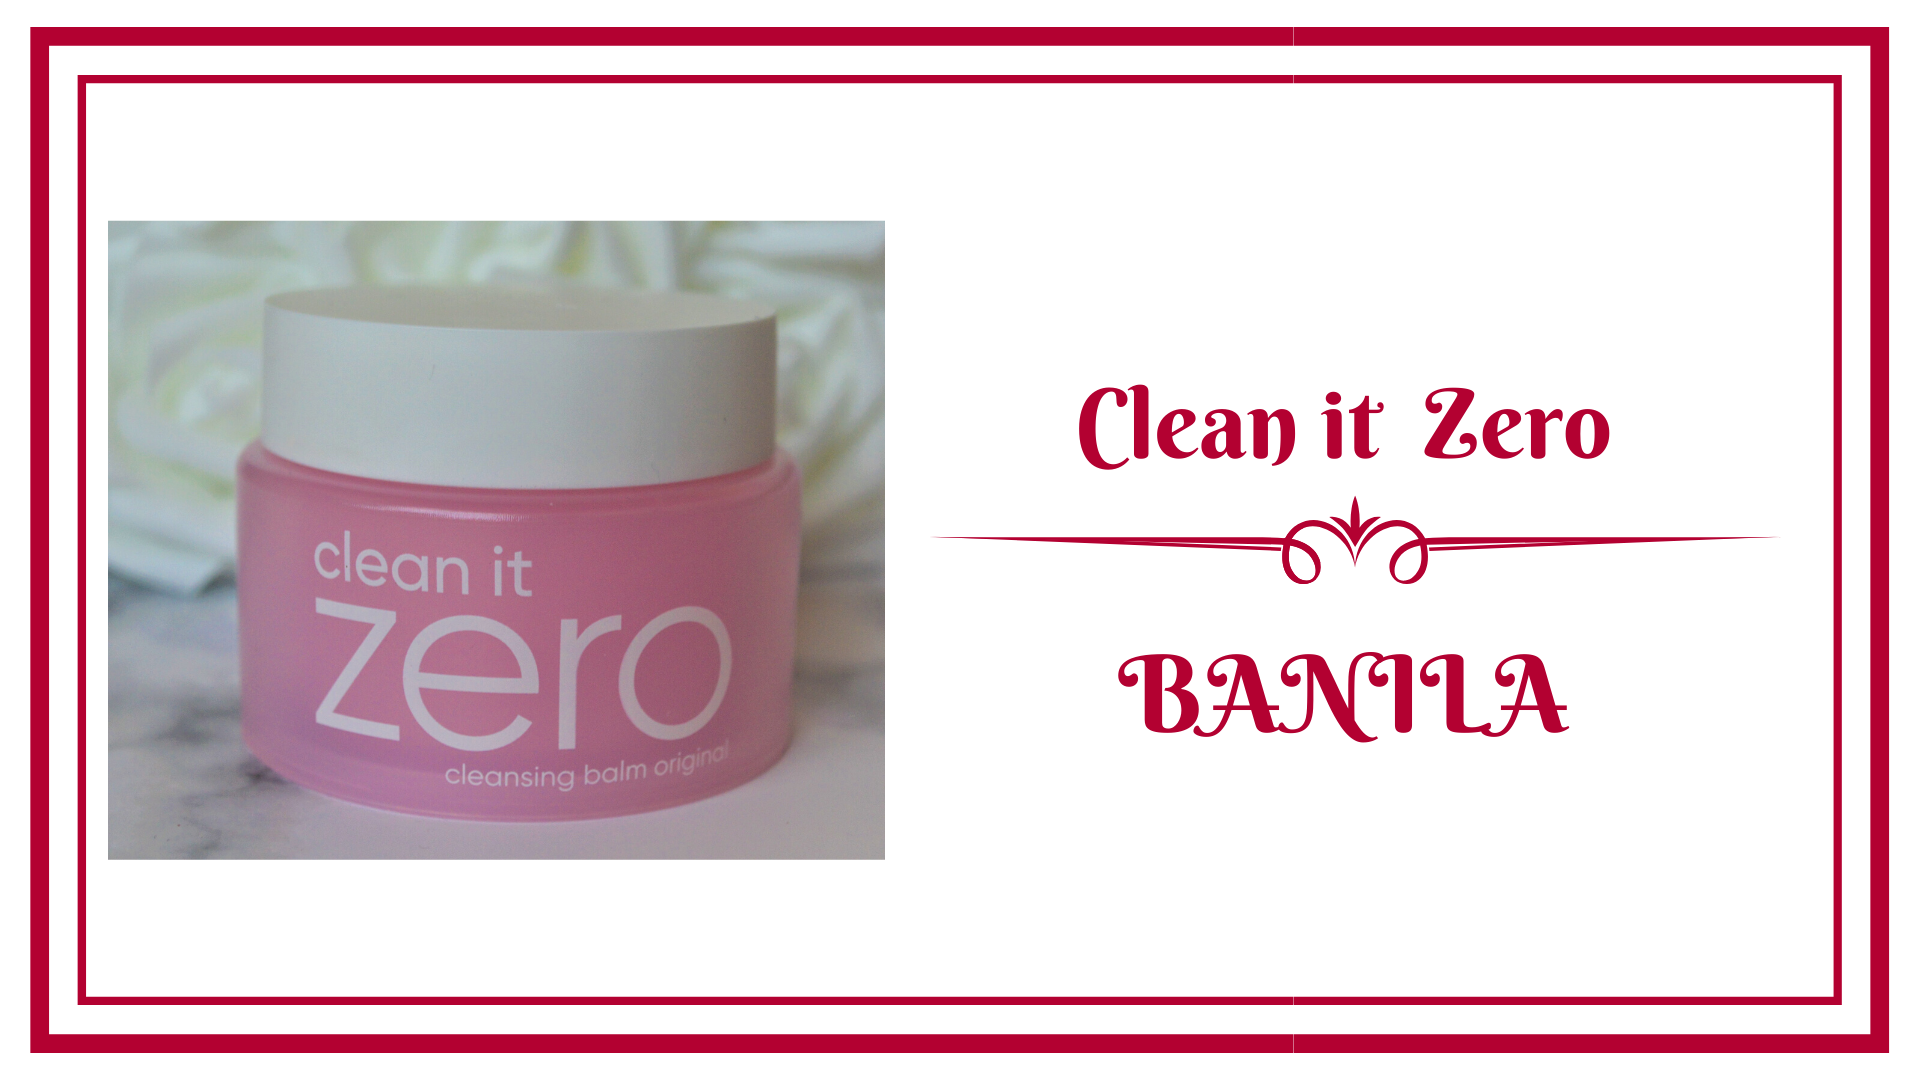 balming clean it zero by banila